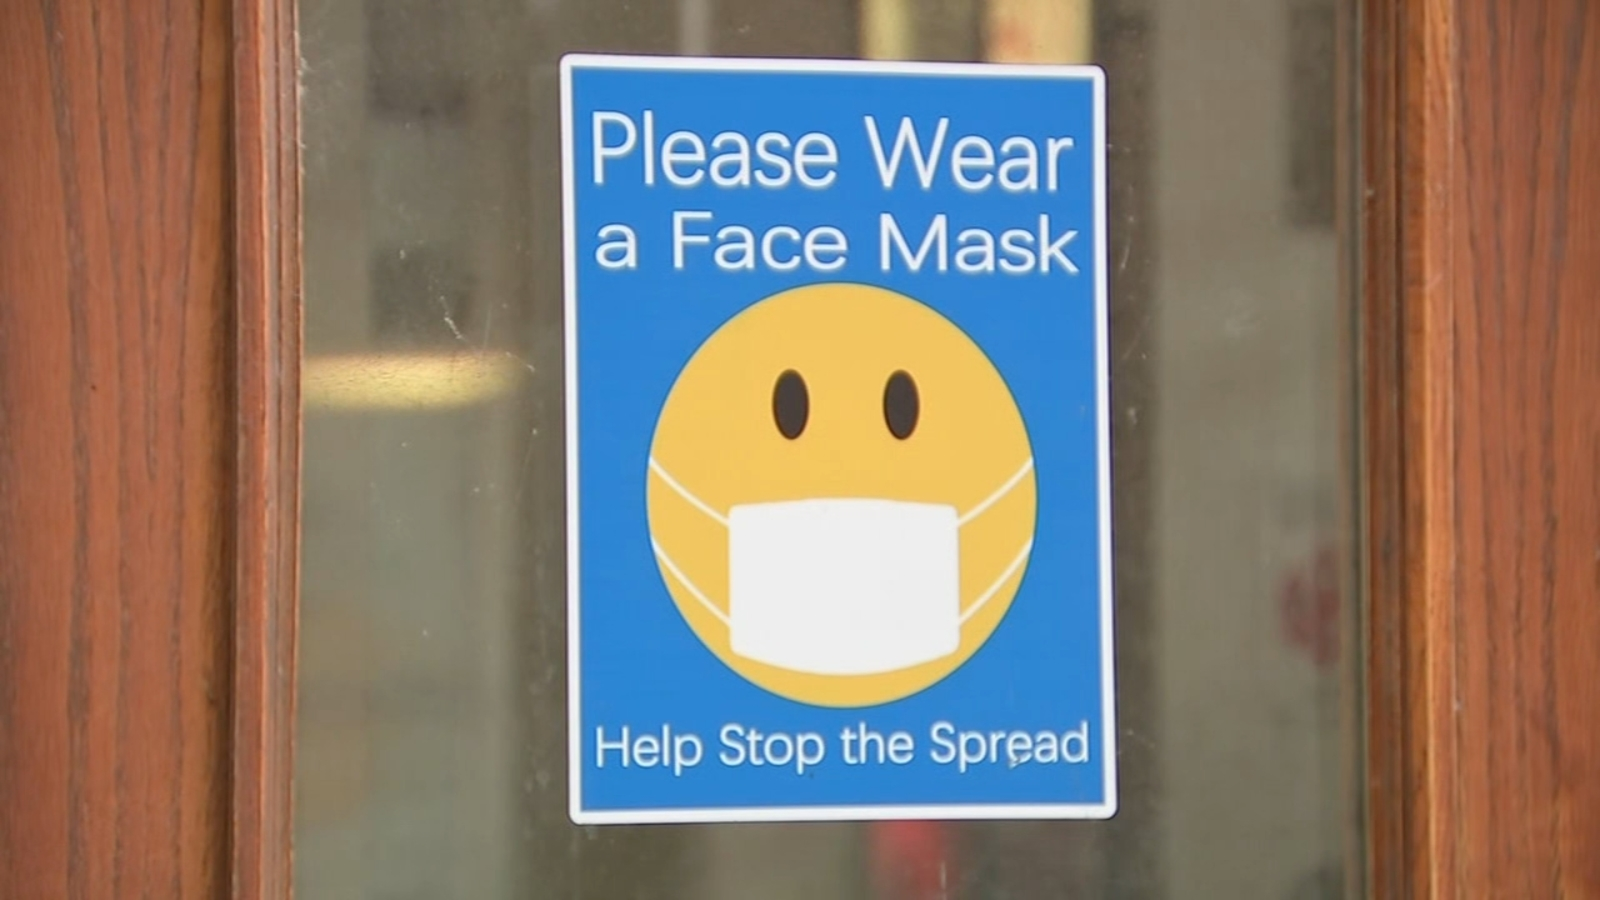 Chicago mask mandate 2021: City reinstates indoor mask mandate as COVID cases rise, health officials announce